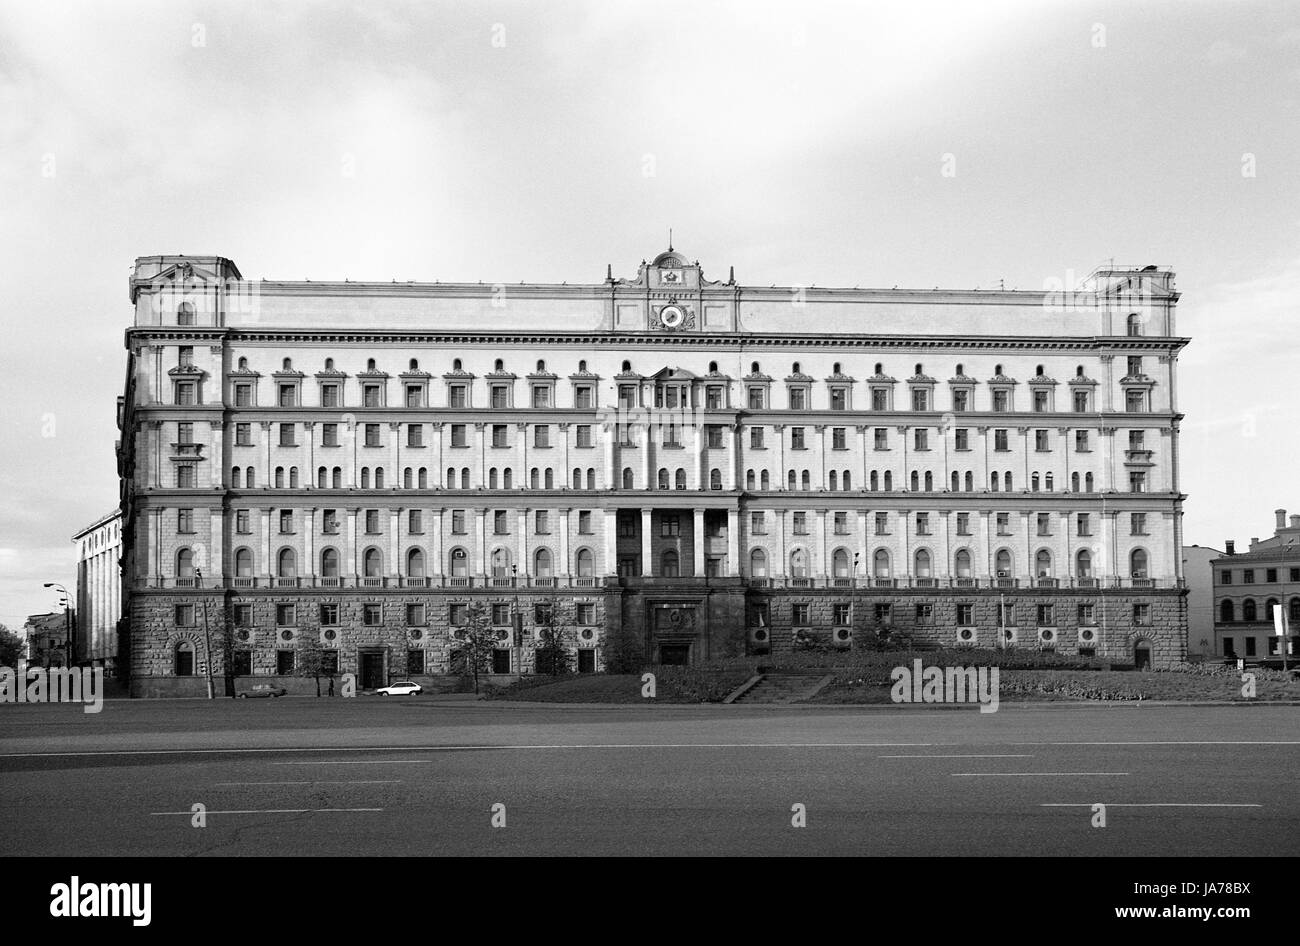 FSB (former KGB) building on Lubyanka Square in Moscow - Stock Image